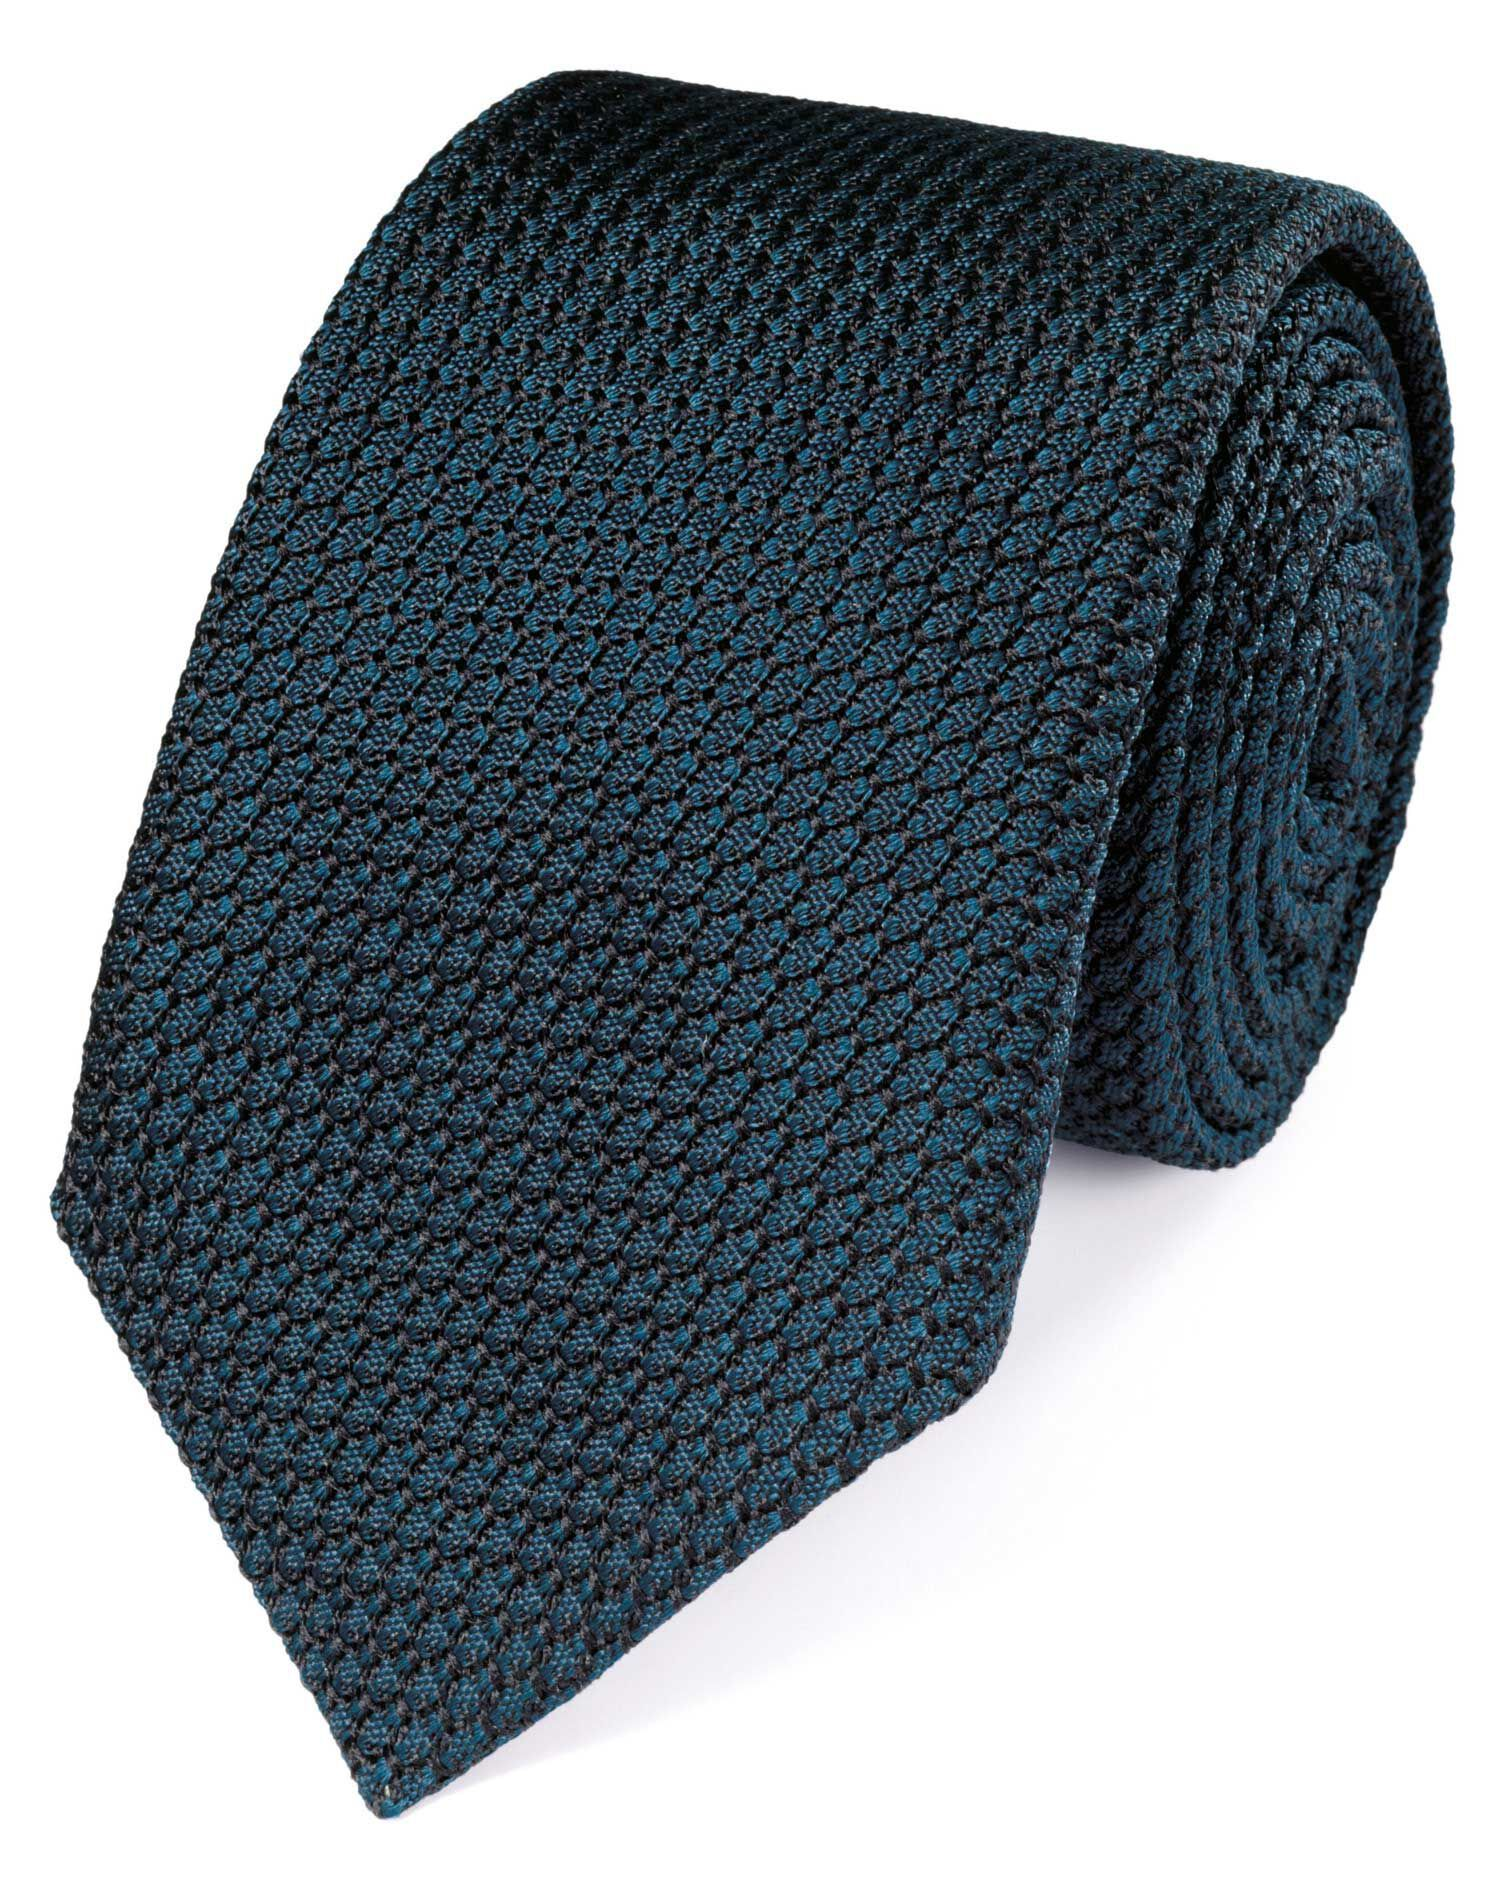 Teal Silk Plain Grenadine Luxury Tie Size OSFA by Charles Tyrwhitt